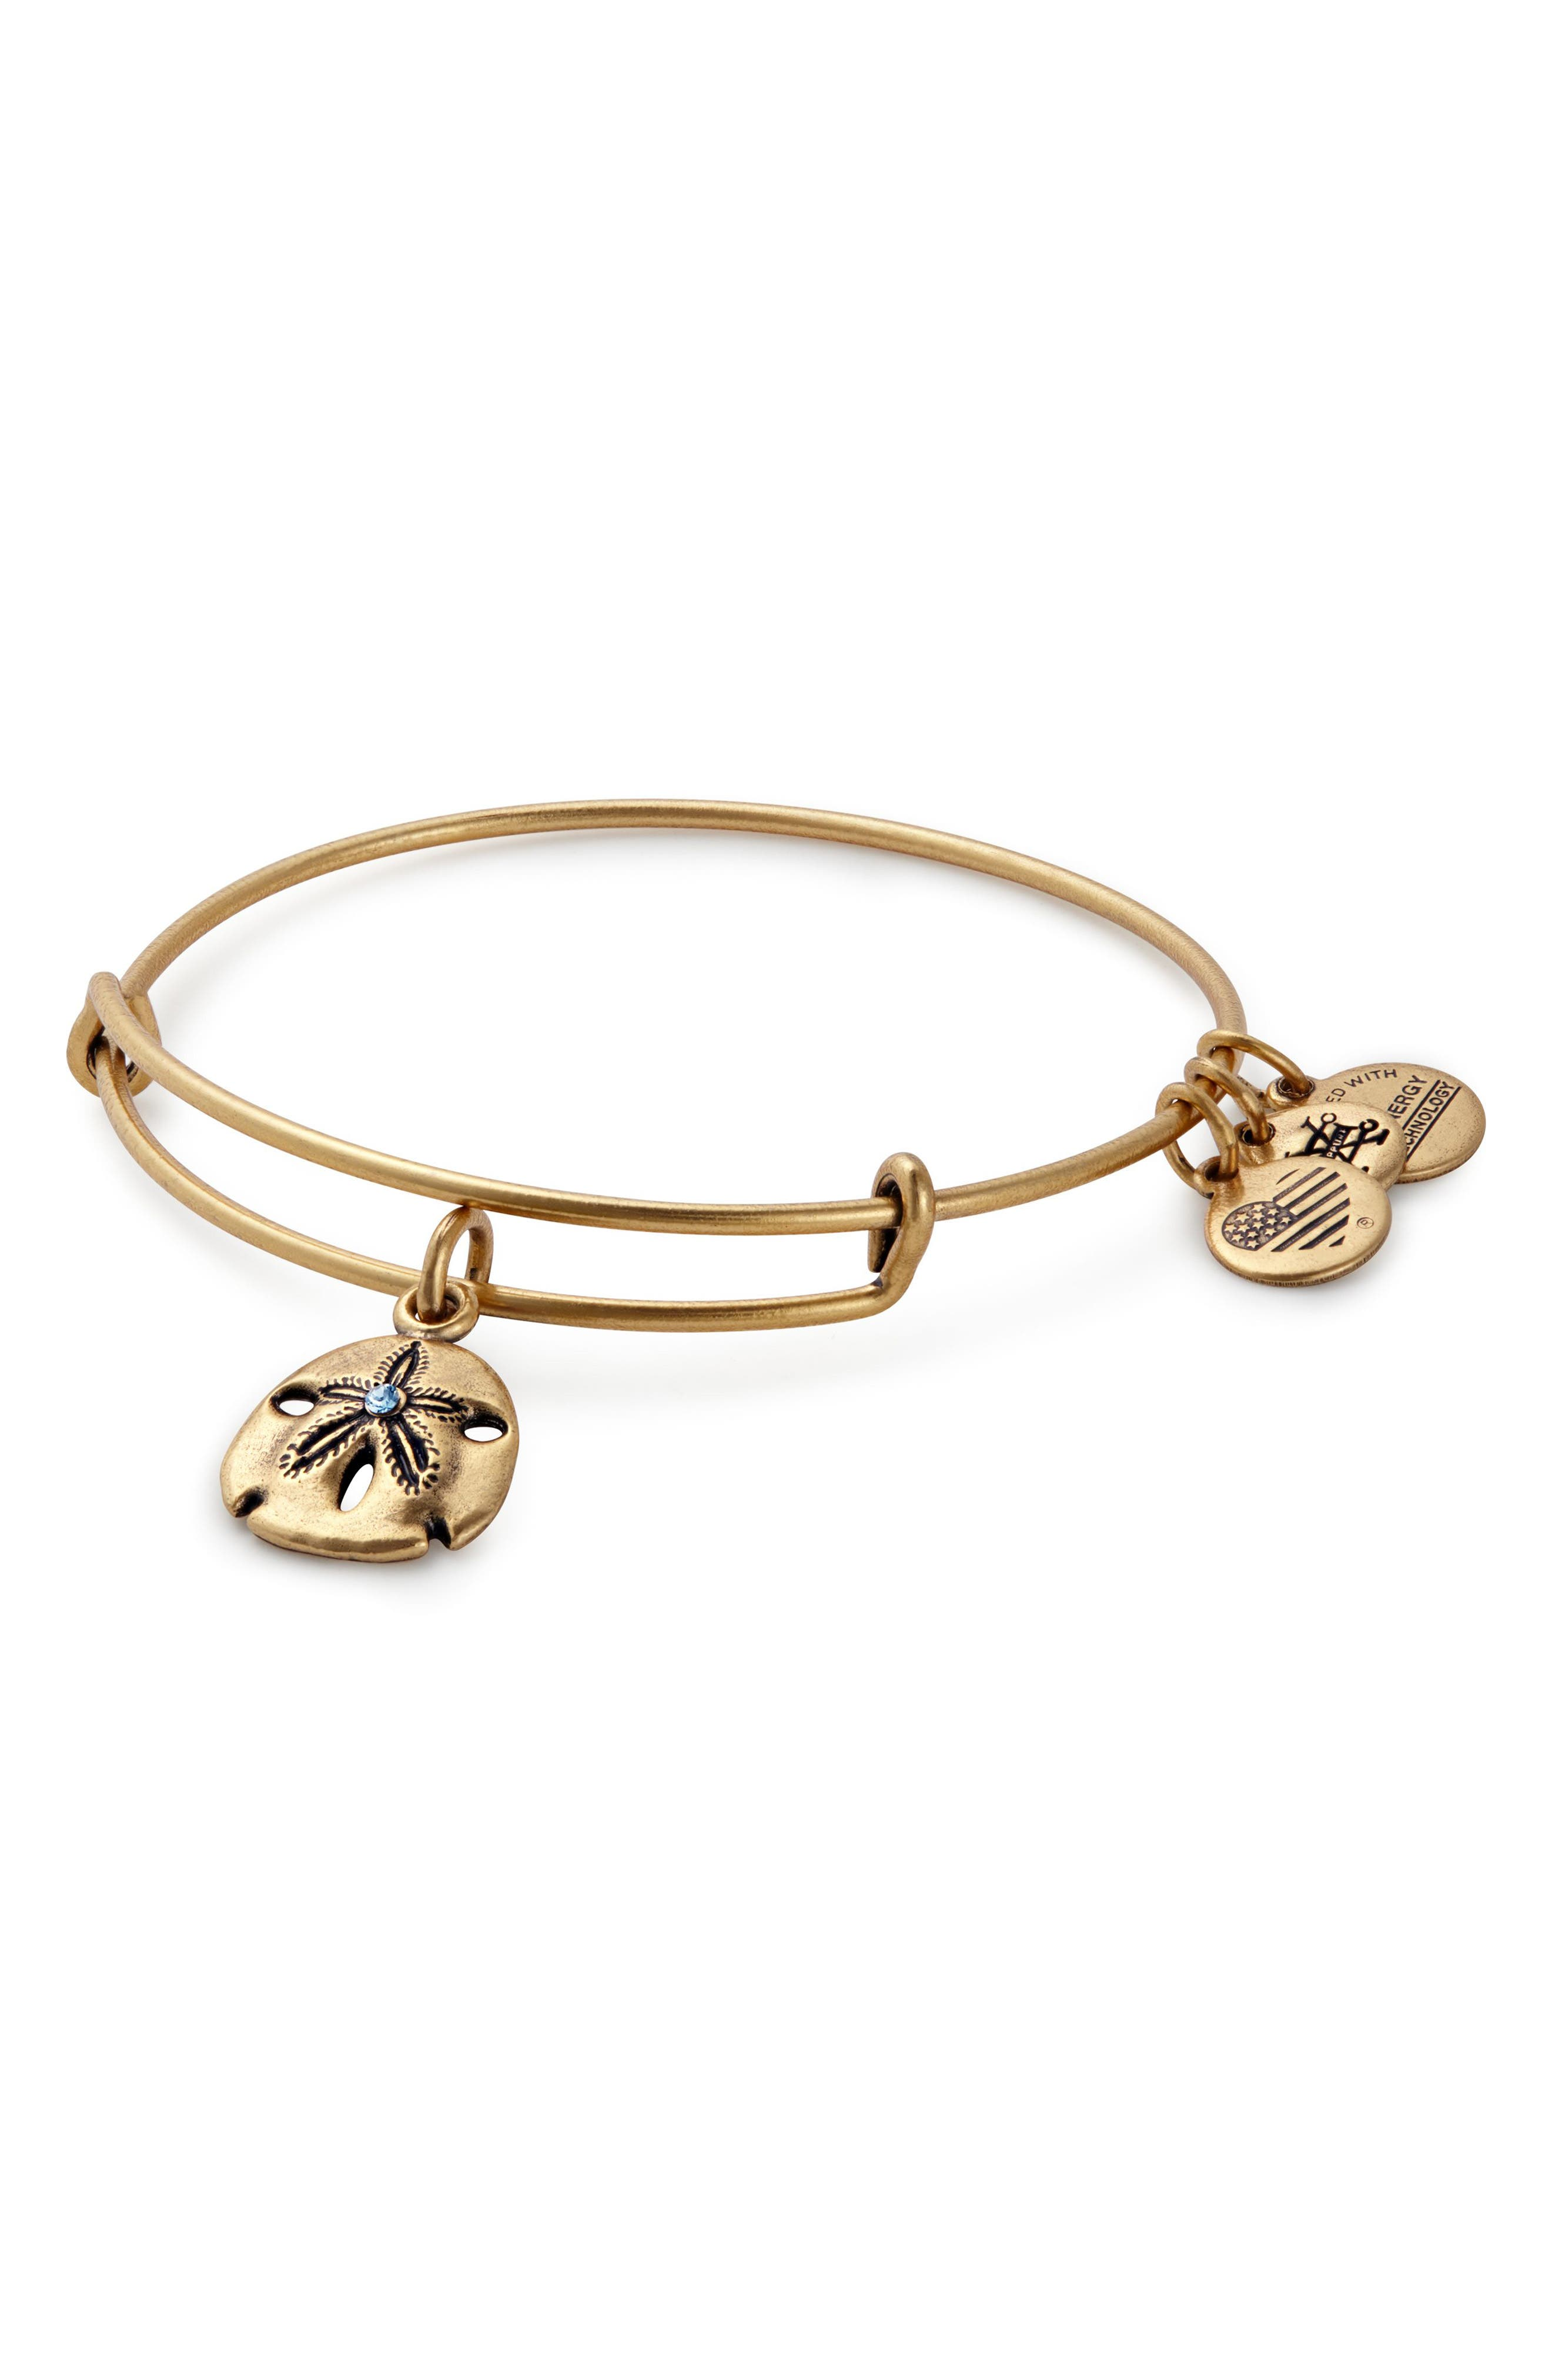 Sand Dollar Adjustable Wire Bangle,                             Main thumbnail 1, color,                             GOLD